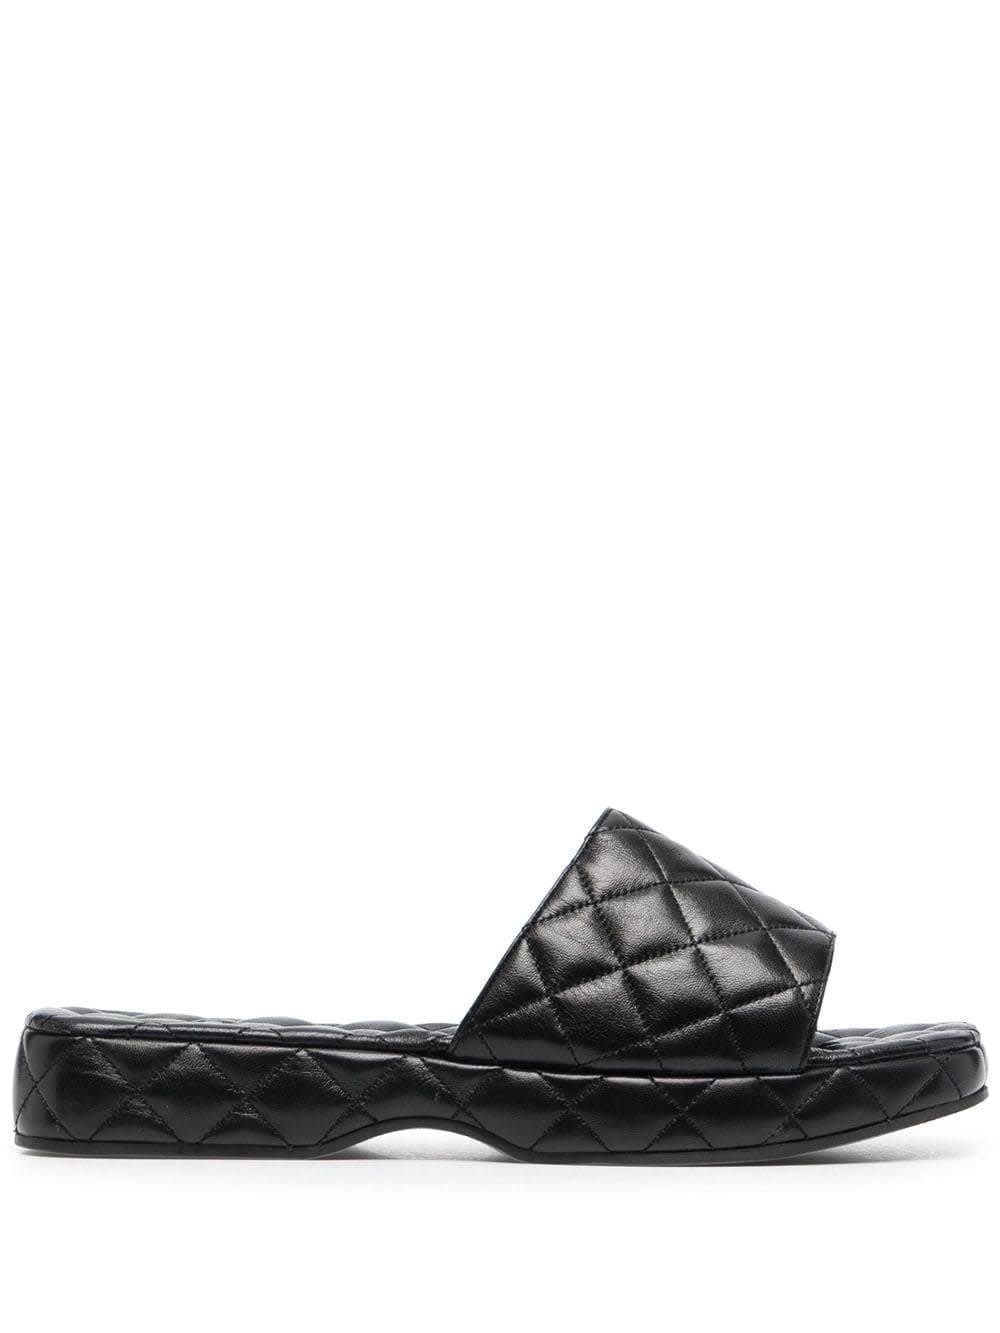 BY FAR Quilted Leather Black Lilo Mules